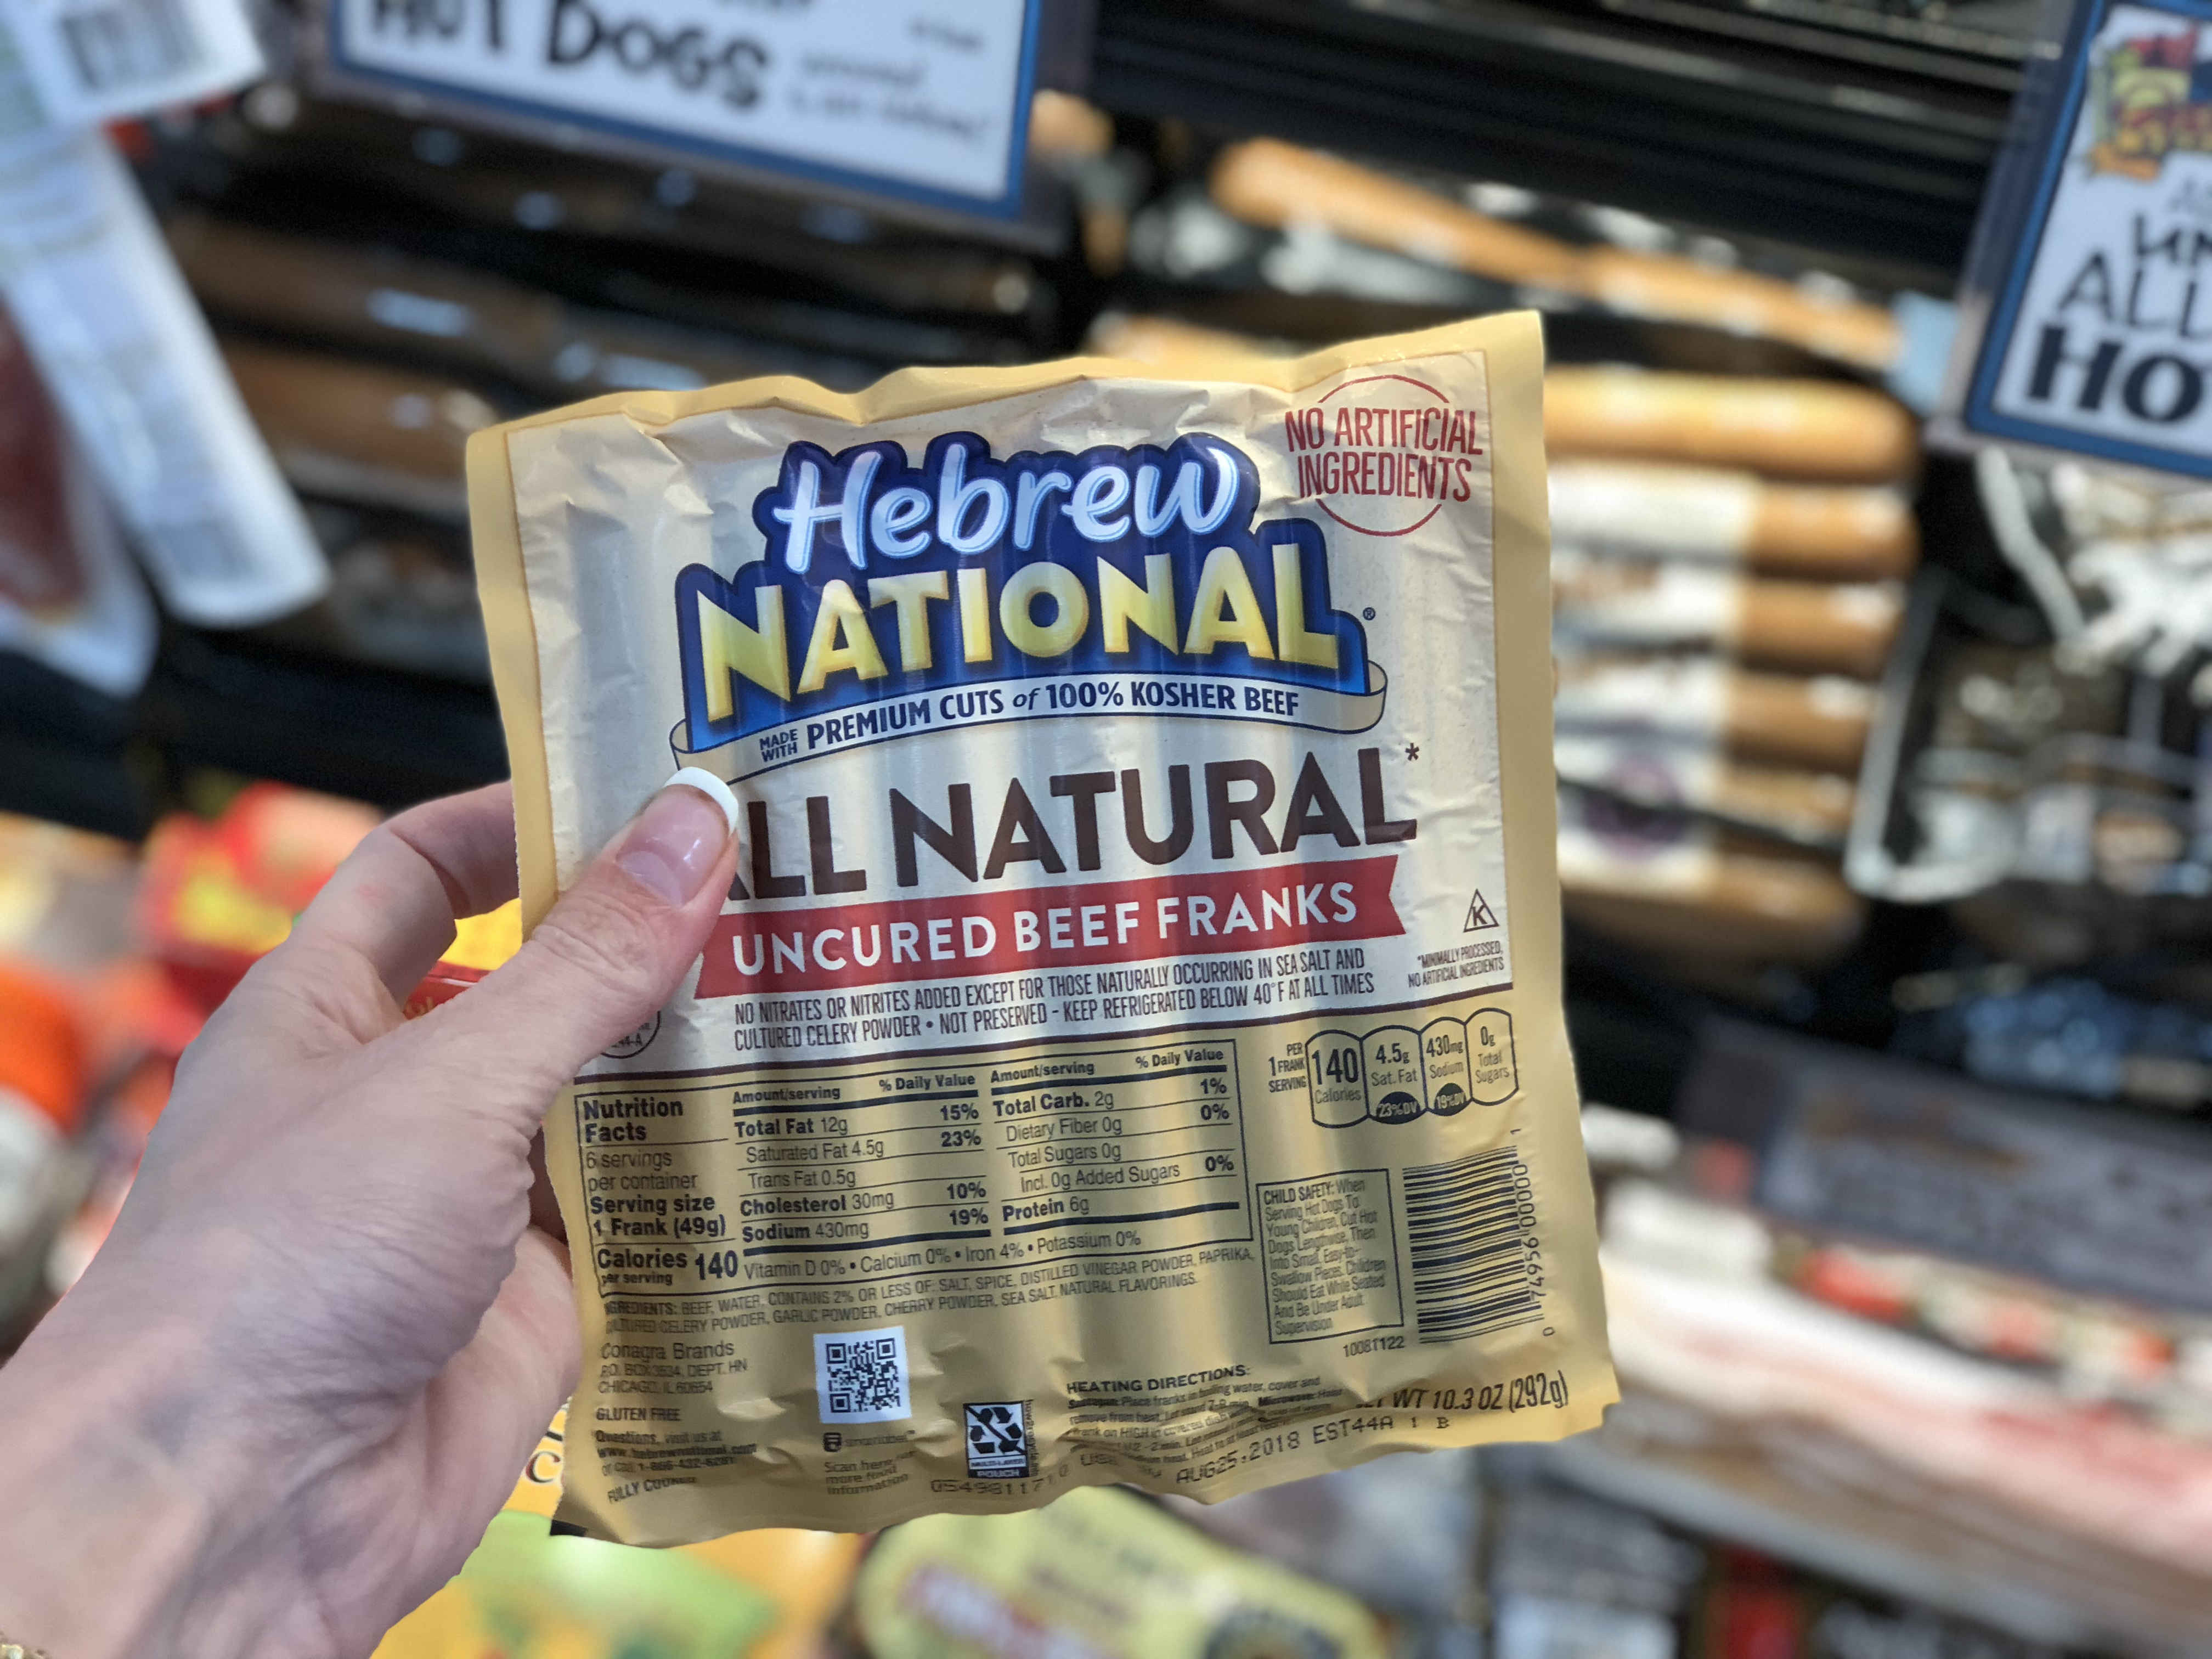 keto and low-carb hot dogs, sausages, and brats – Trader joes hebrew national franks